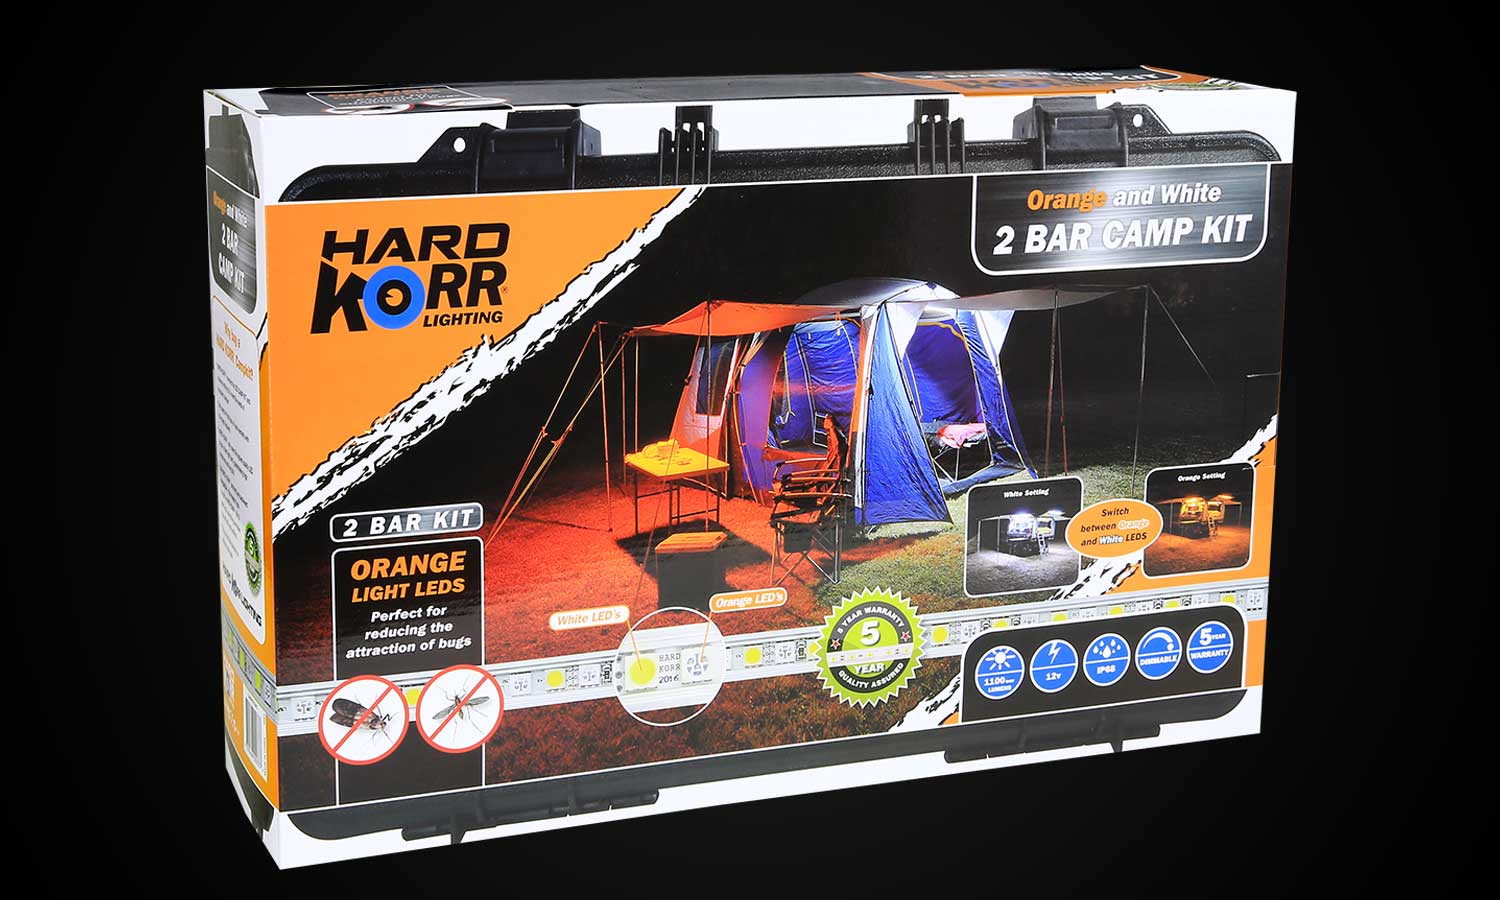 Hard Korr LED Camp Light Kit 2 Bar Orange White